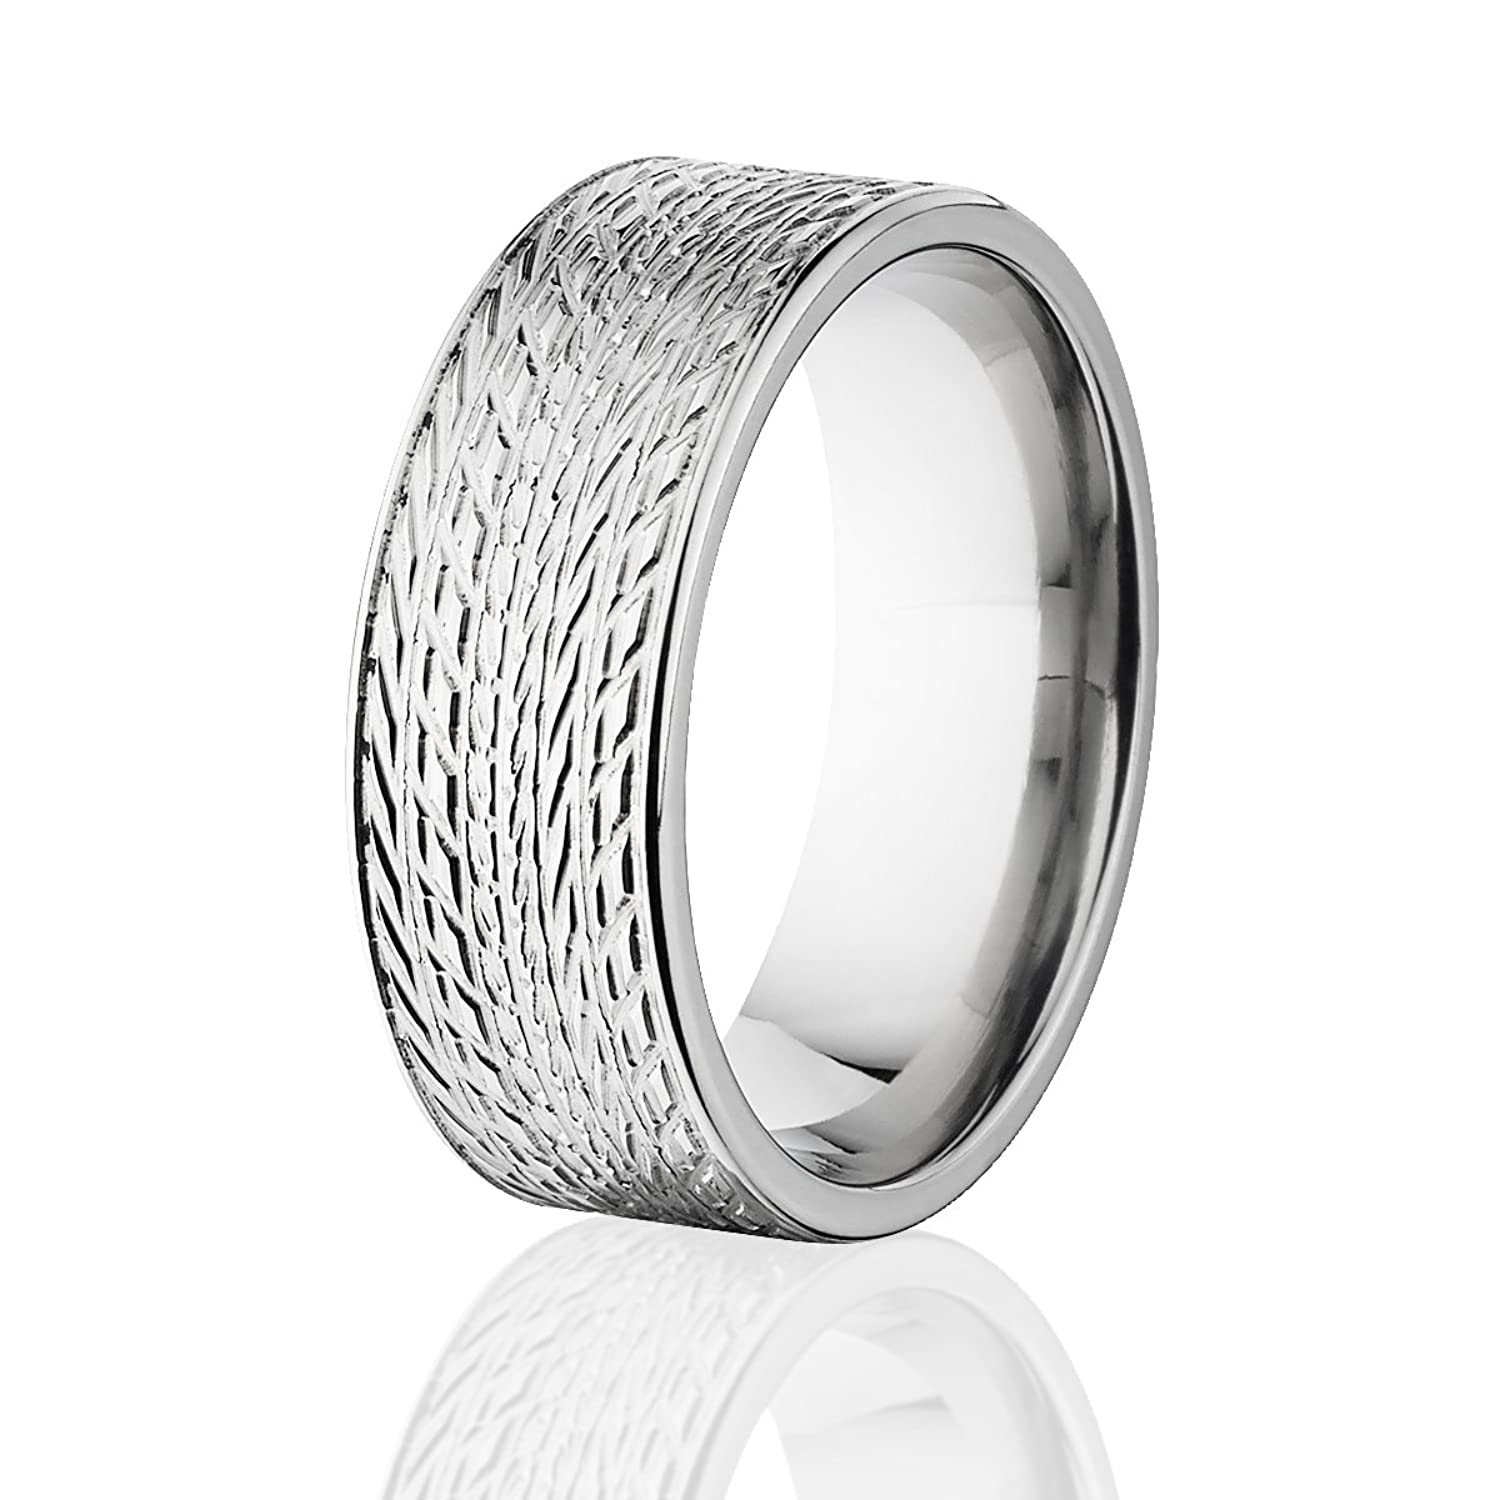 look tire genuine fashion diamond rings stainless cz in with row clear jewelry of crystals products rows made colors ring steel available size wedding full three crystal